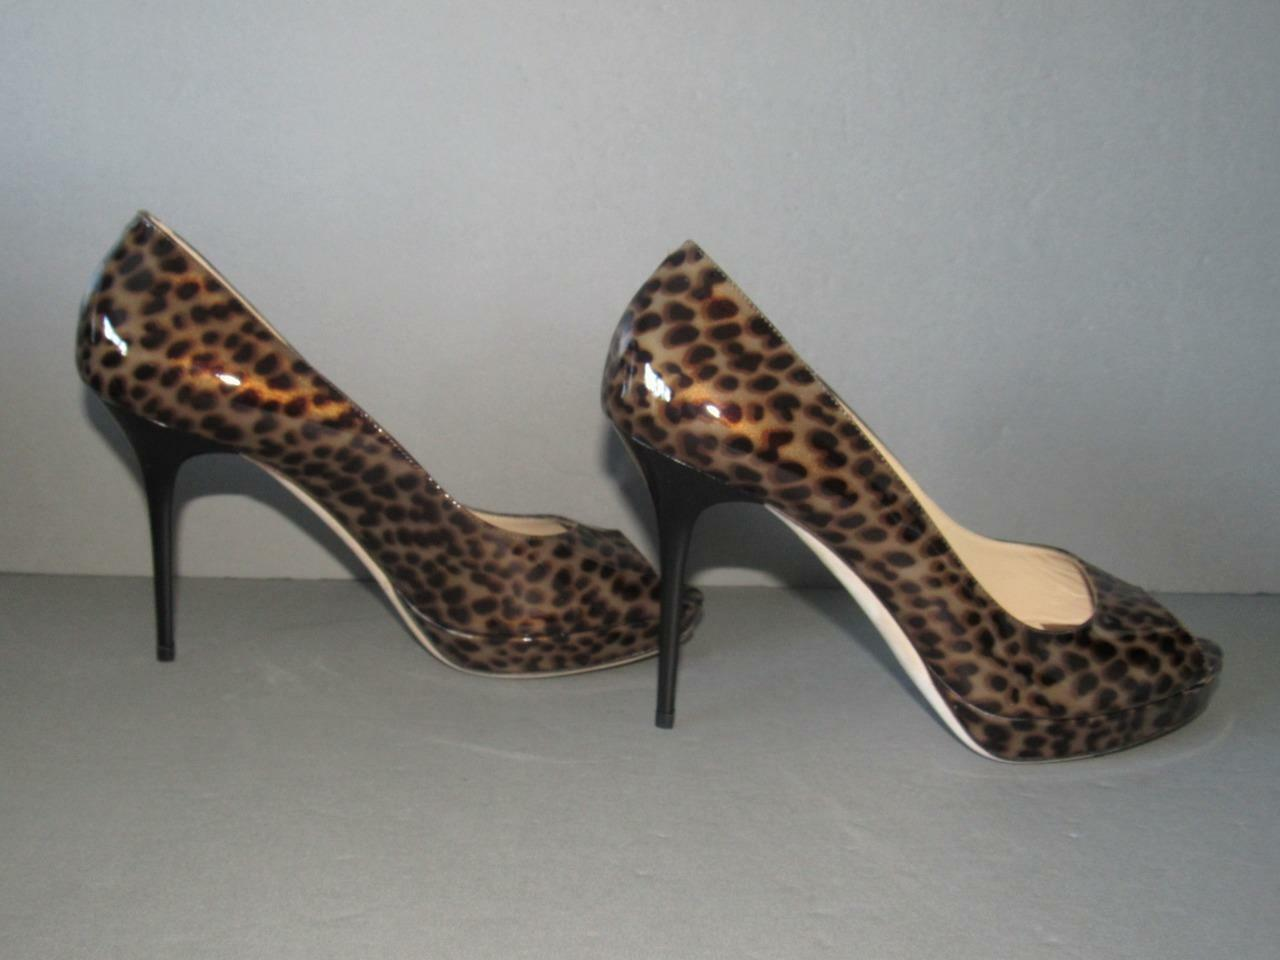 AUTHENTIC JIMMY CHOO NEW 39.5 LUNA LEOPARD PATENT PLATFORM PEEP TOE PUMPS SCARPE